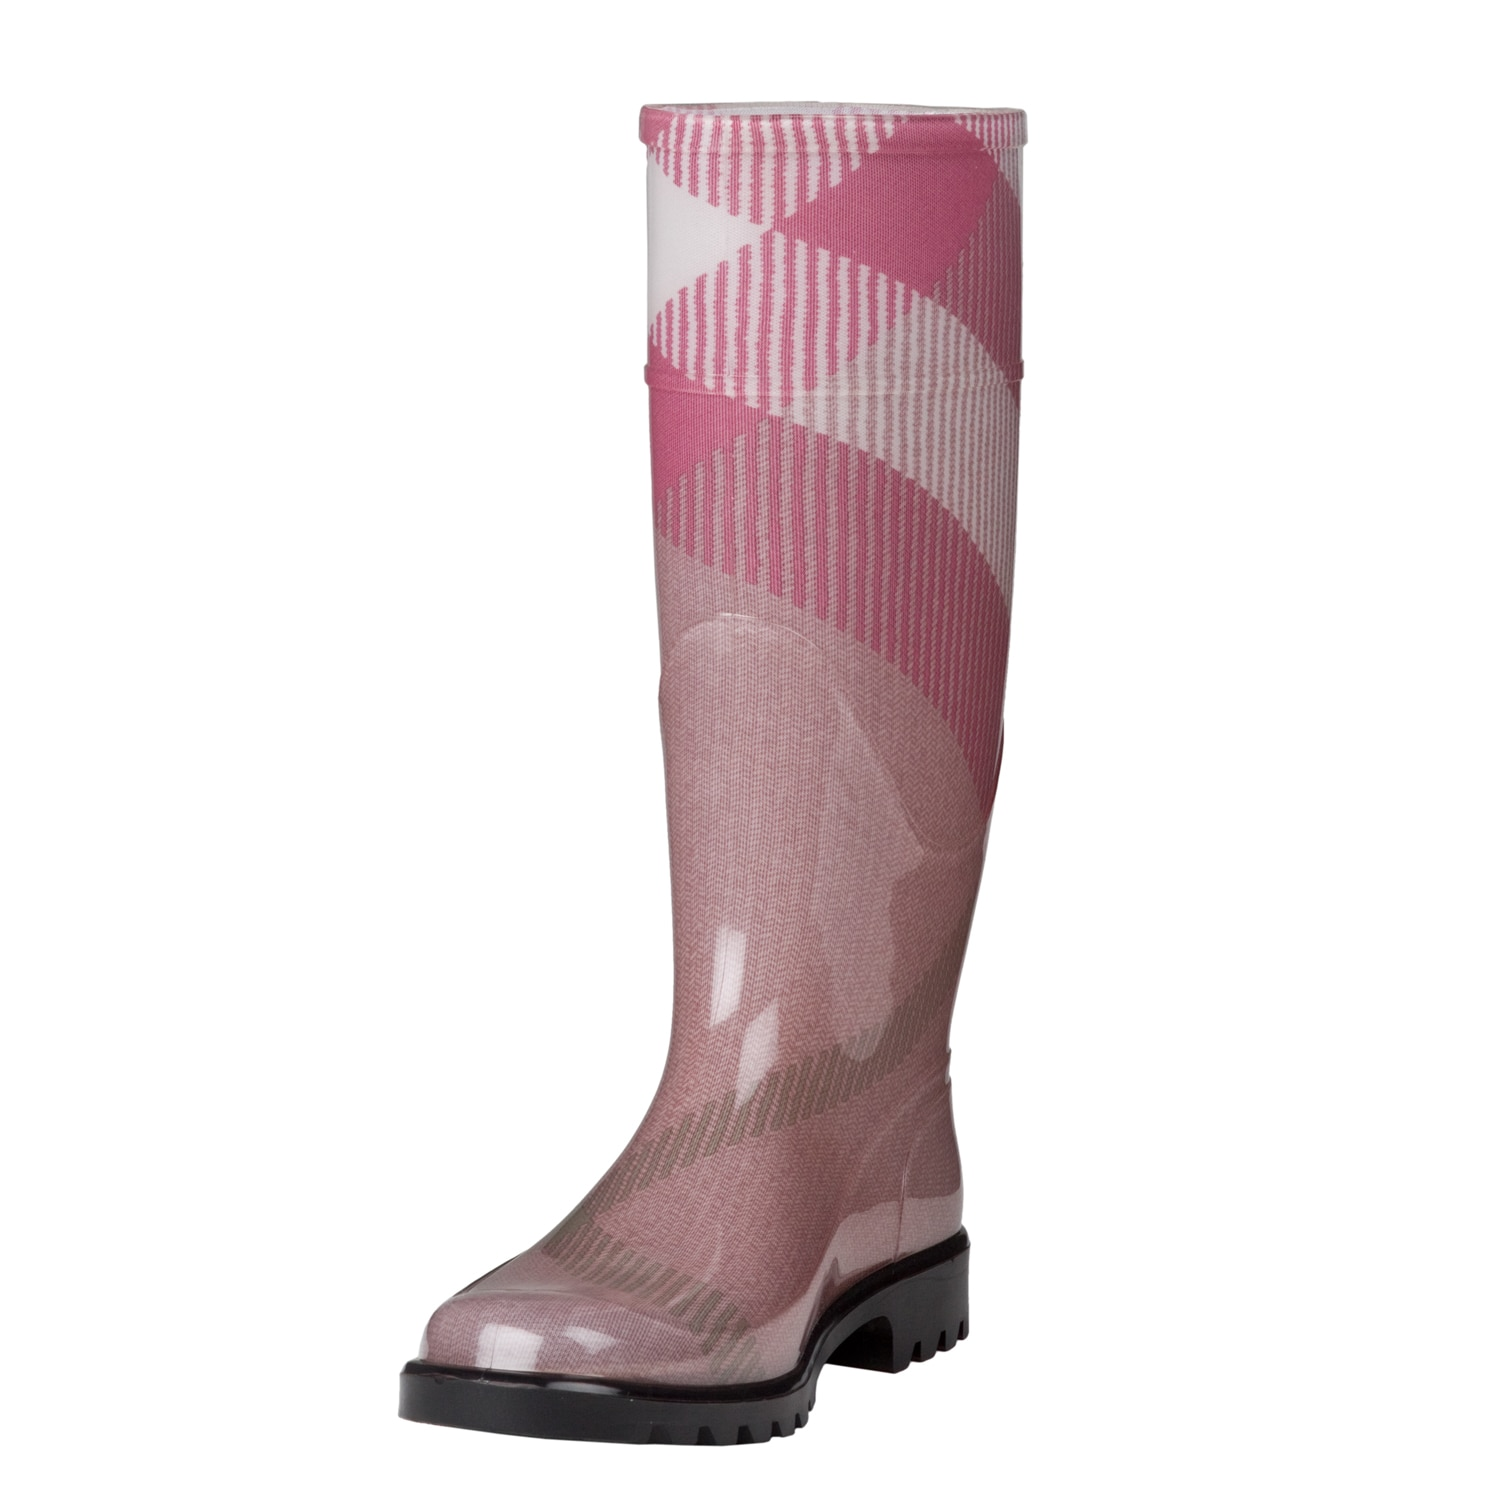 Burberry Women's Pink Exploded Check Rain Boots